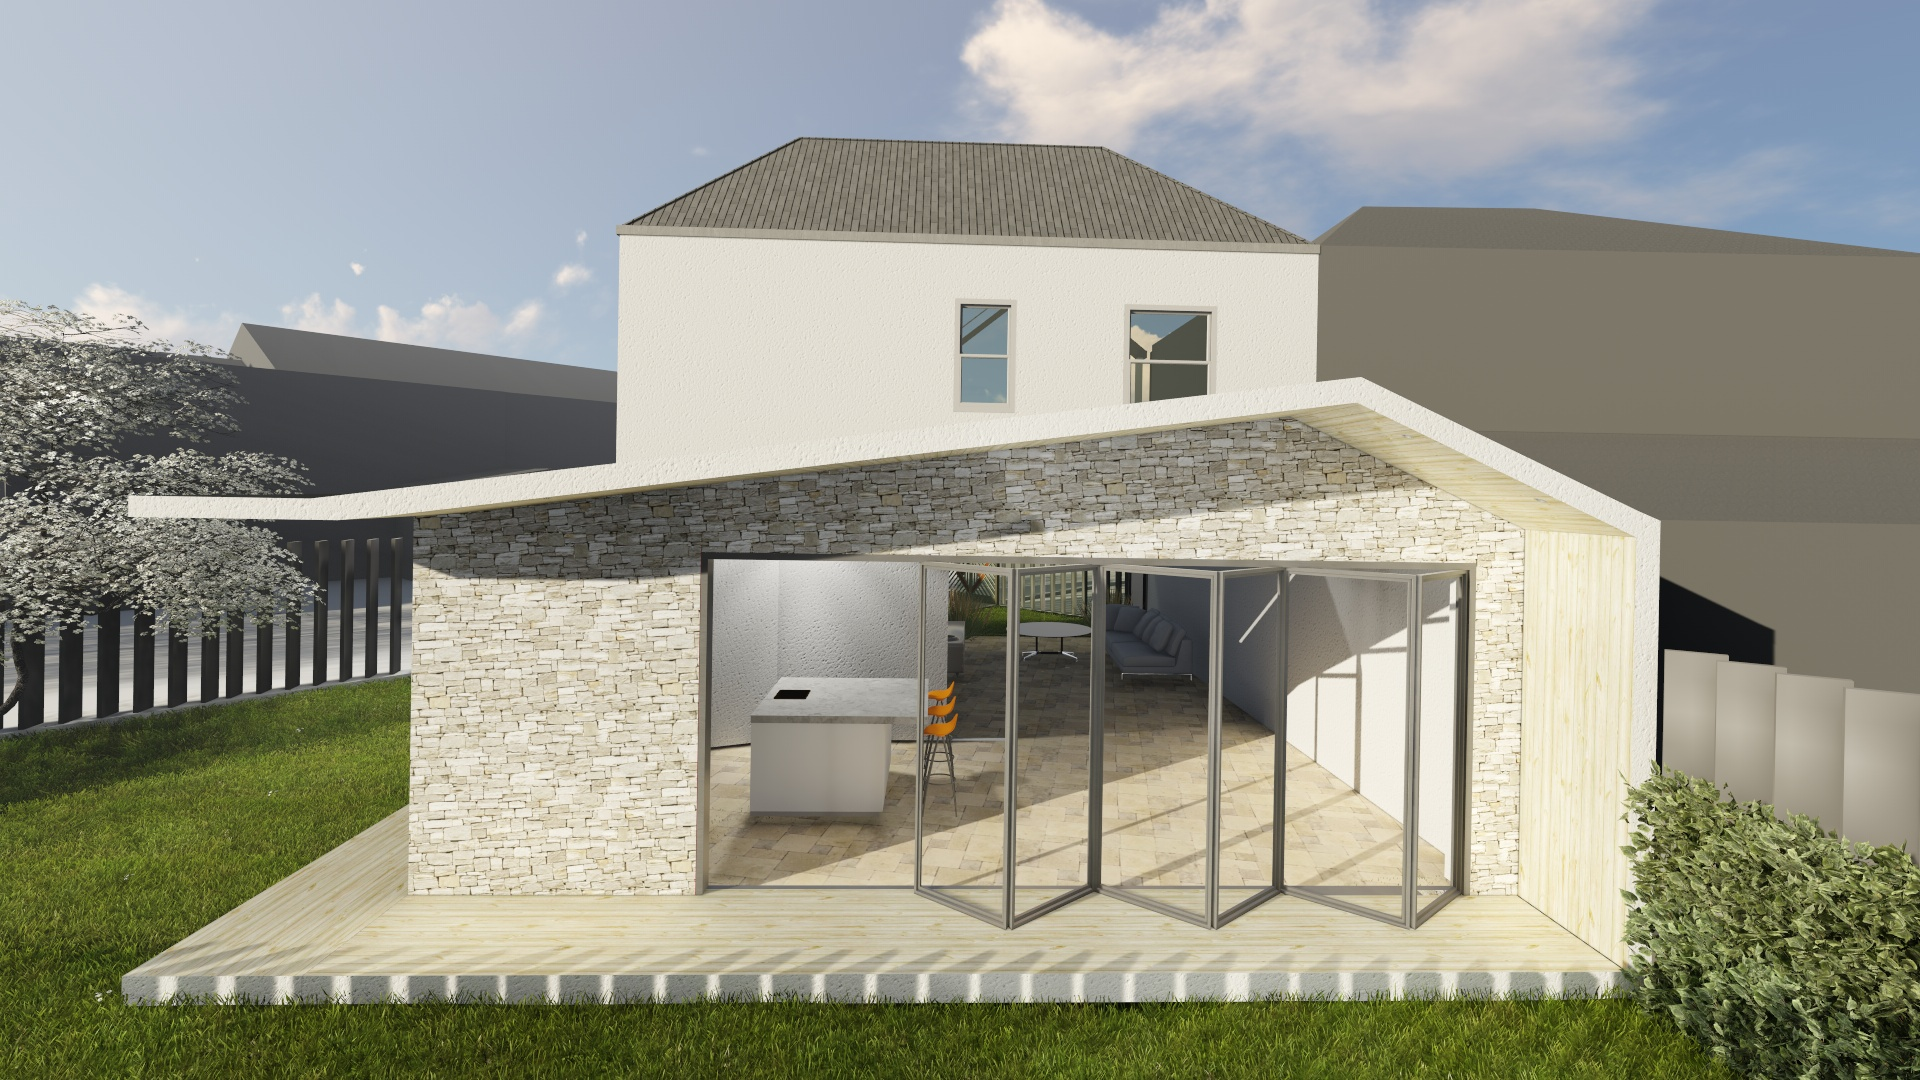 planning single storey rear extension longon Extension architecture